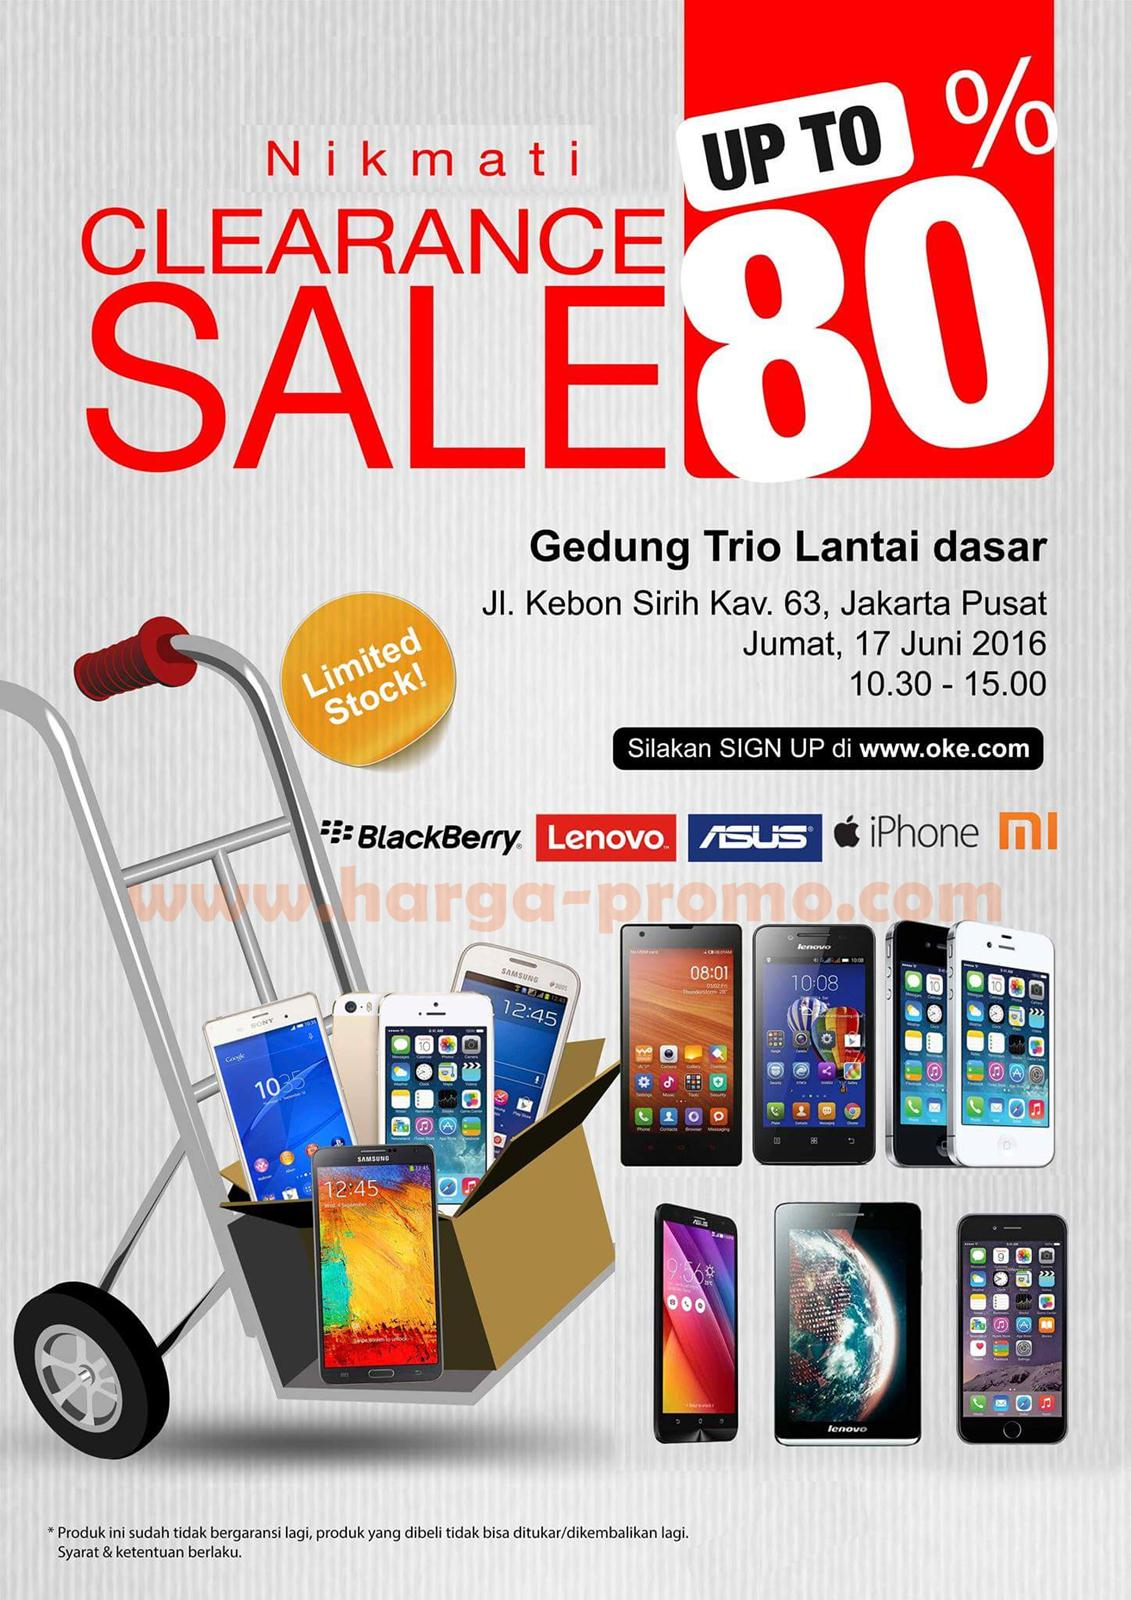 Promo oke shop terbaru clearance sale up to 80 periode 17 juni 2016 promo oke shop terbaru clearance sale up to 80 periode 17 juni 2016 reheart